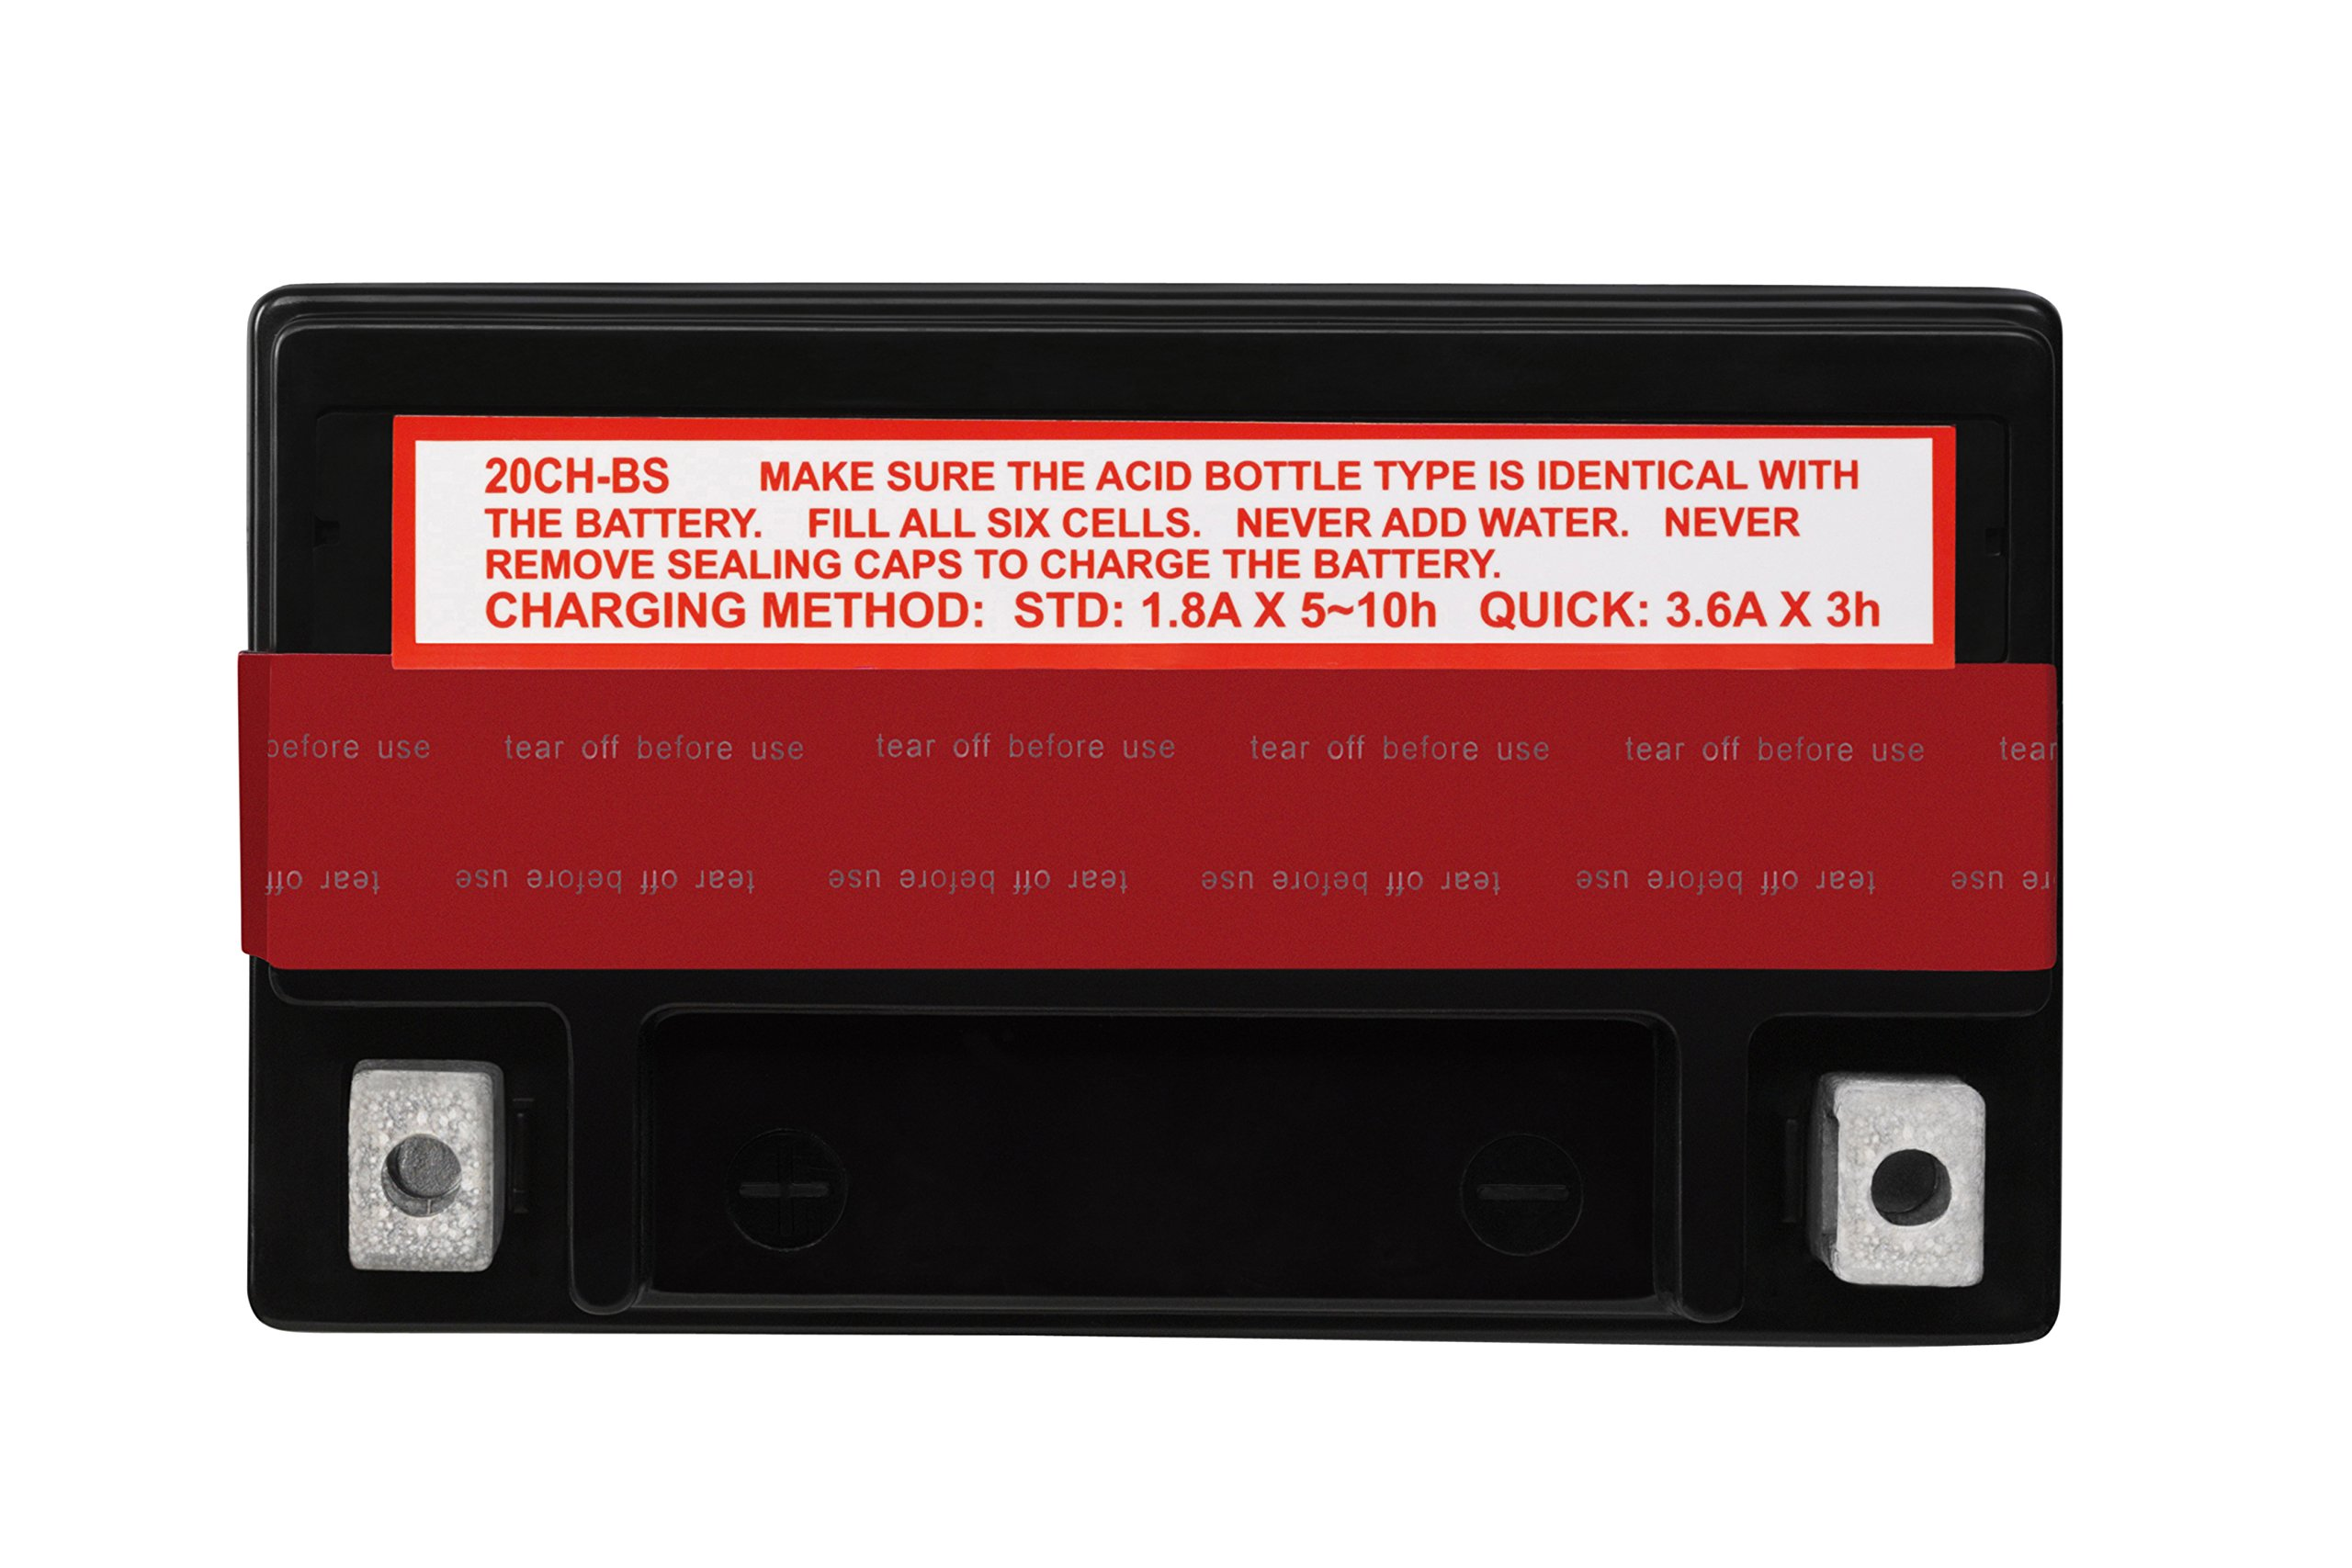 ACDelco ATX20CHBS Specialty AGM Powersports JIS 20CH-BS Battery by ACDelco (Image #4)